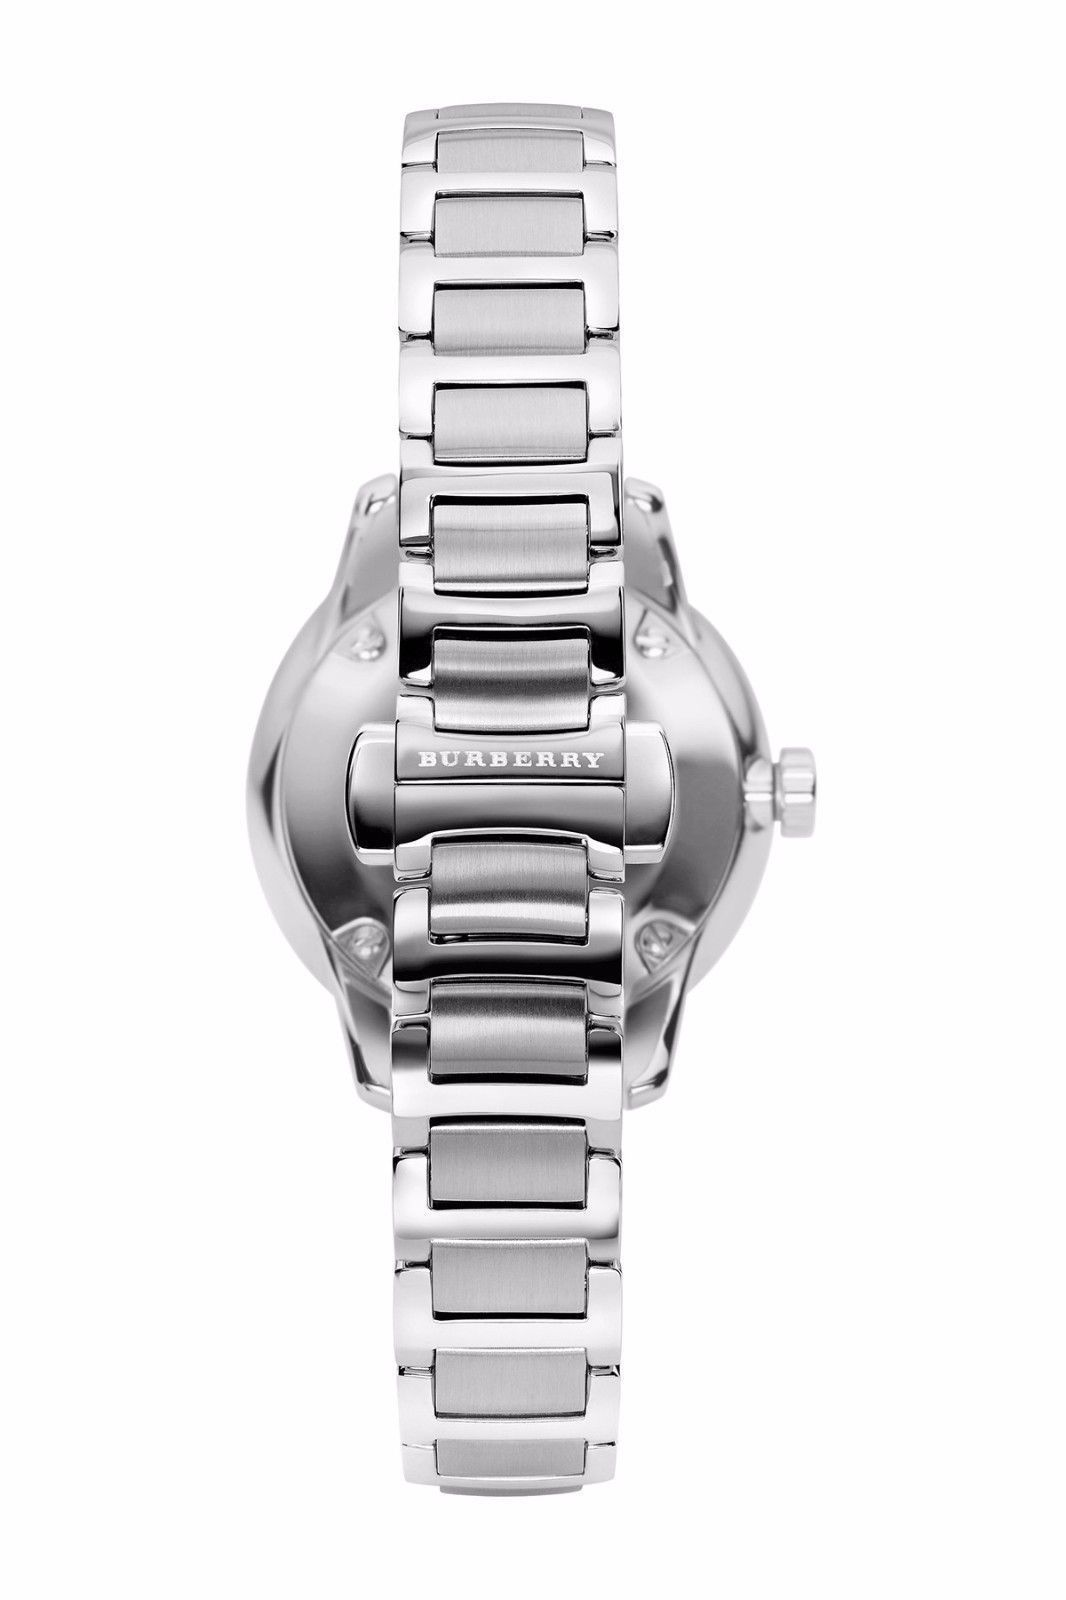 BURBERRY BU10108 Silver Stainless STEEL The Classic Round Ladies Watch NIB